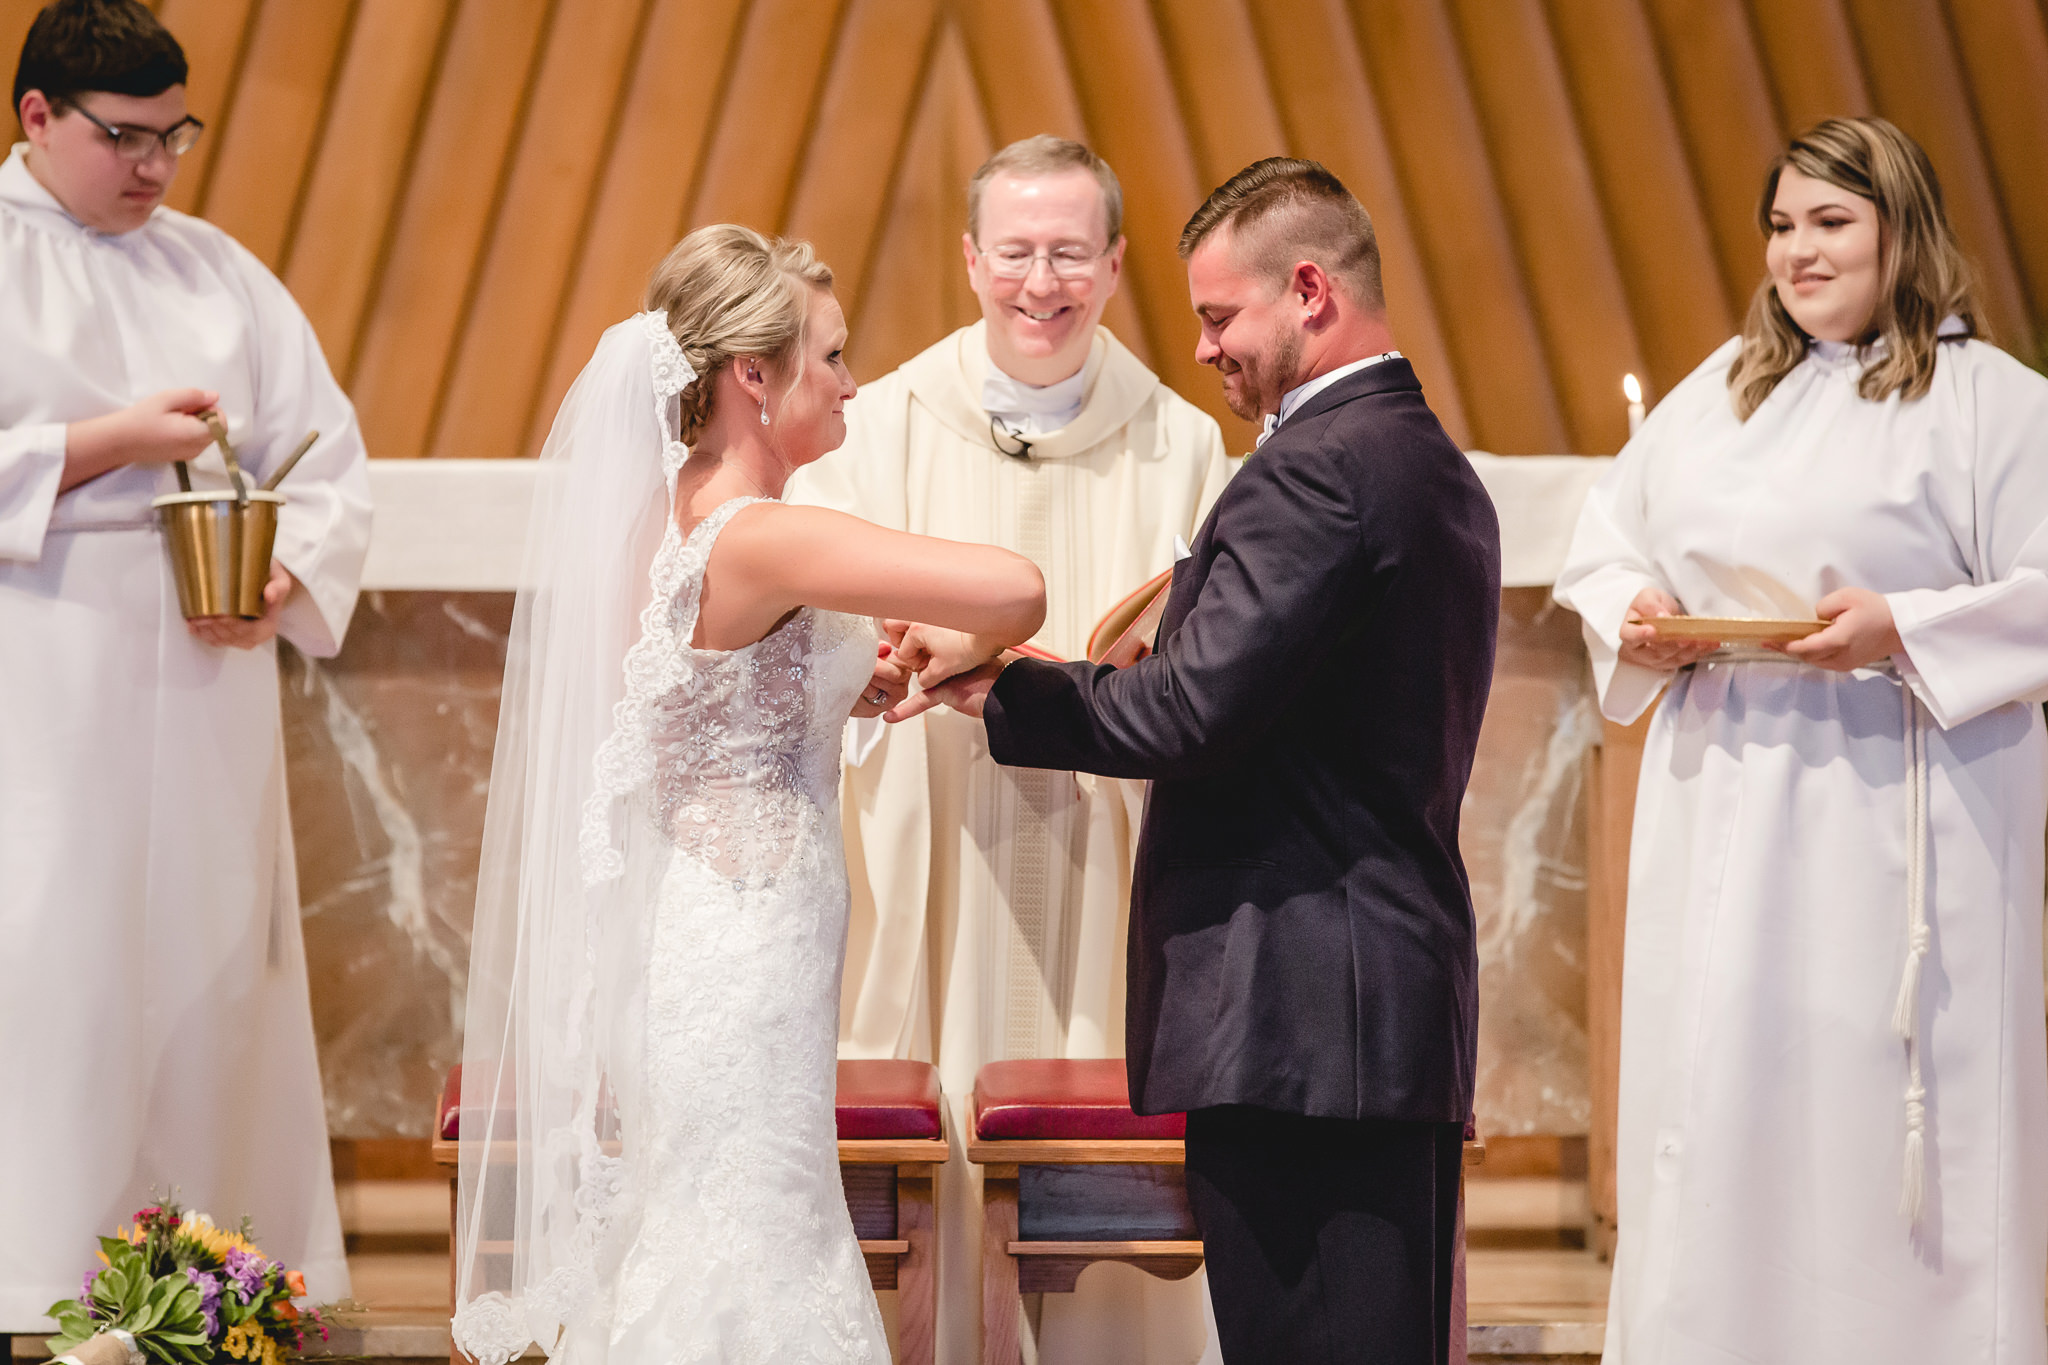 Bride struggles to get the groom's ring on his finger at St. Titus Church